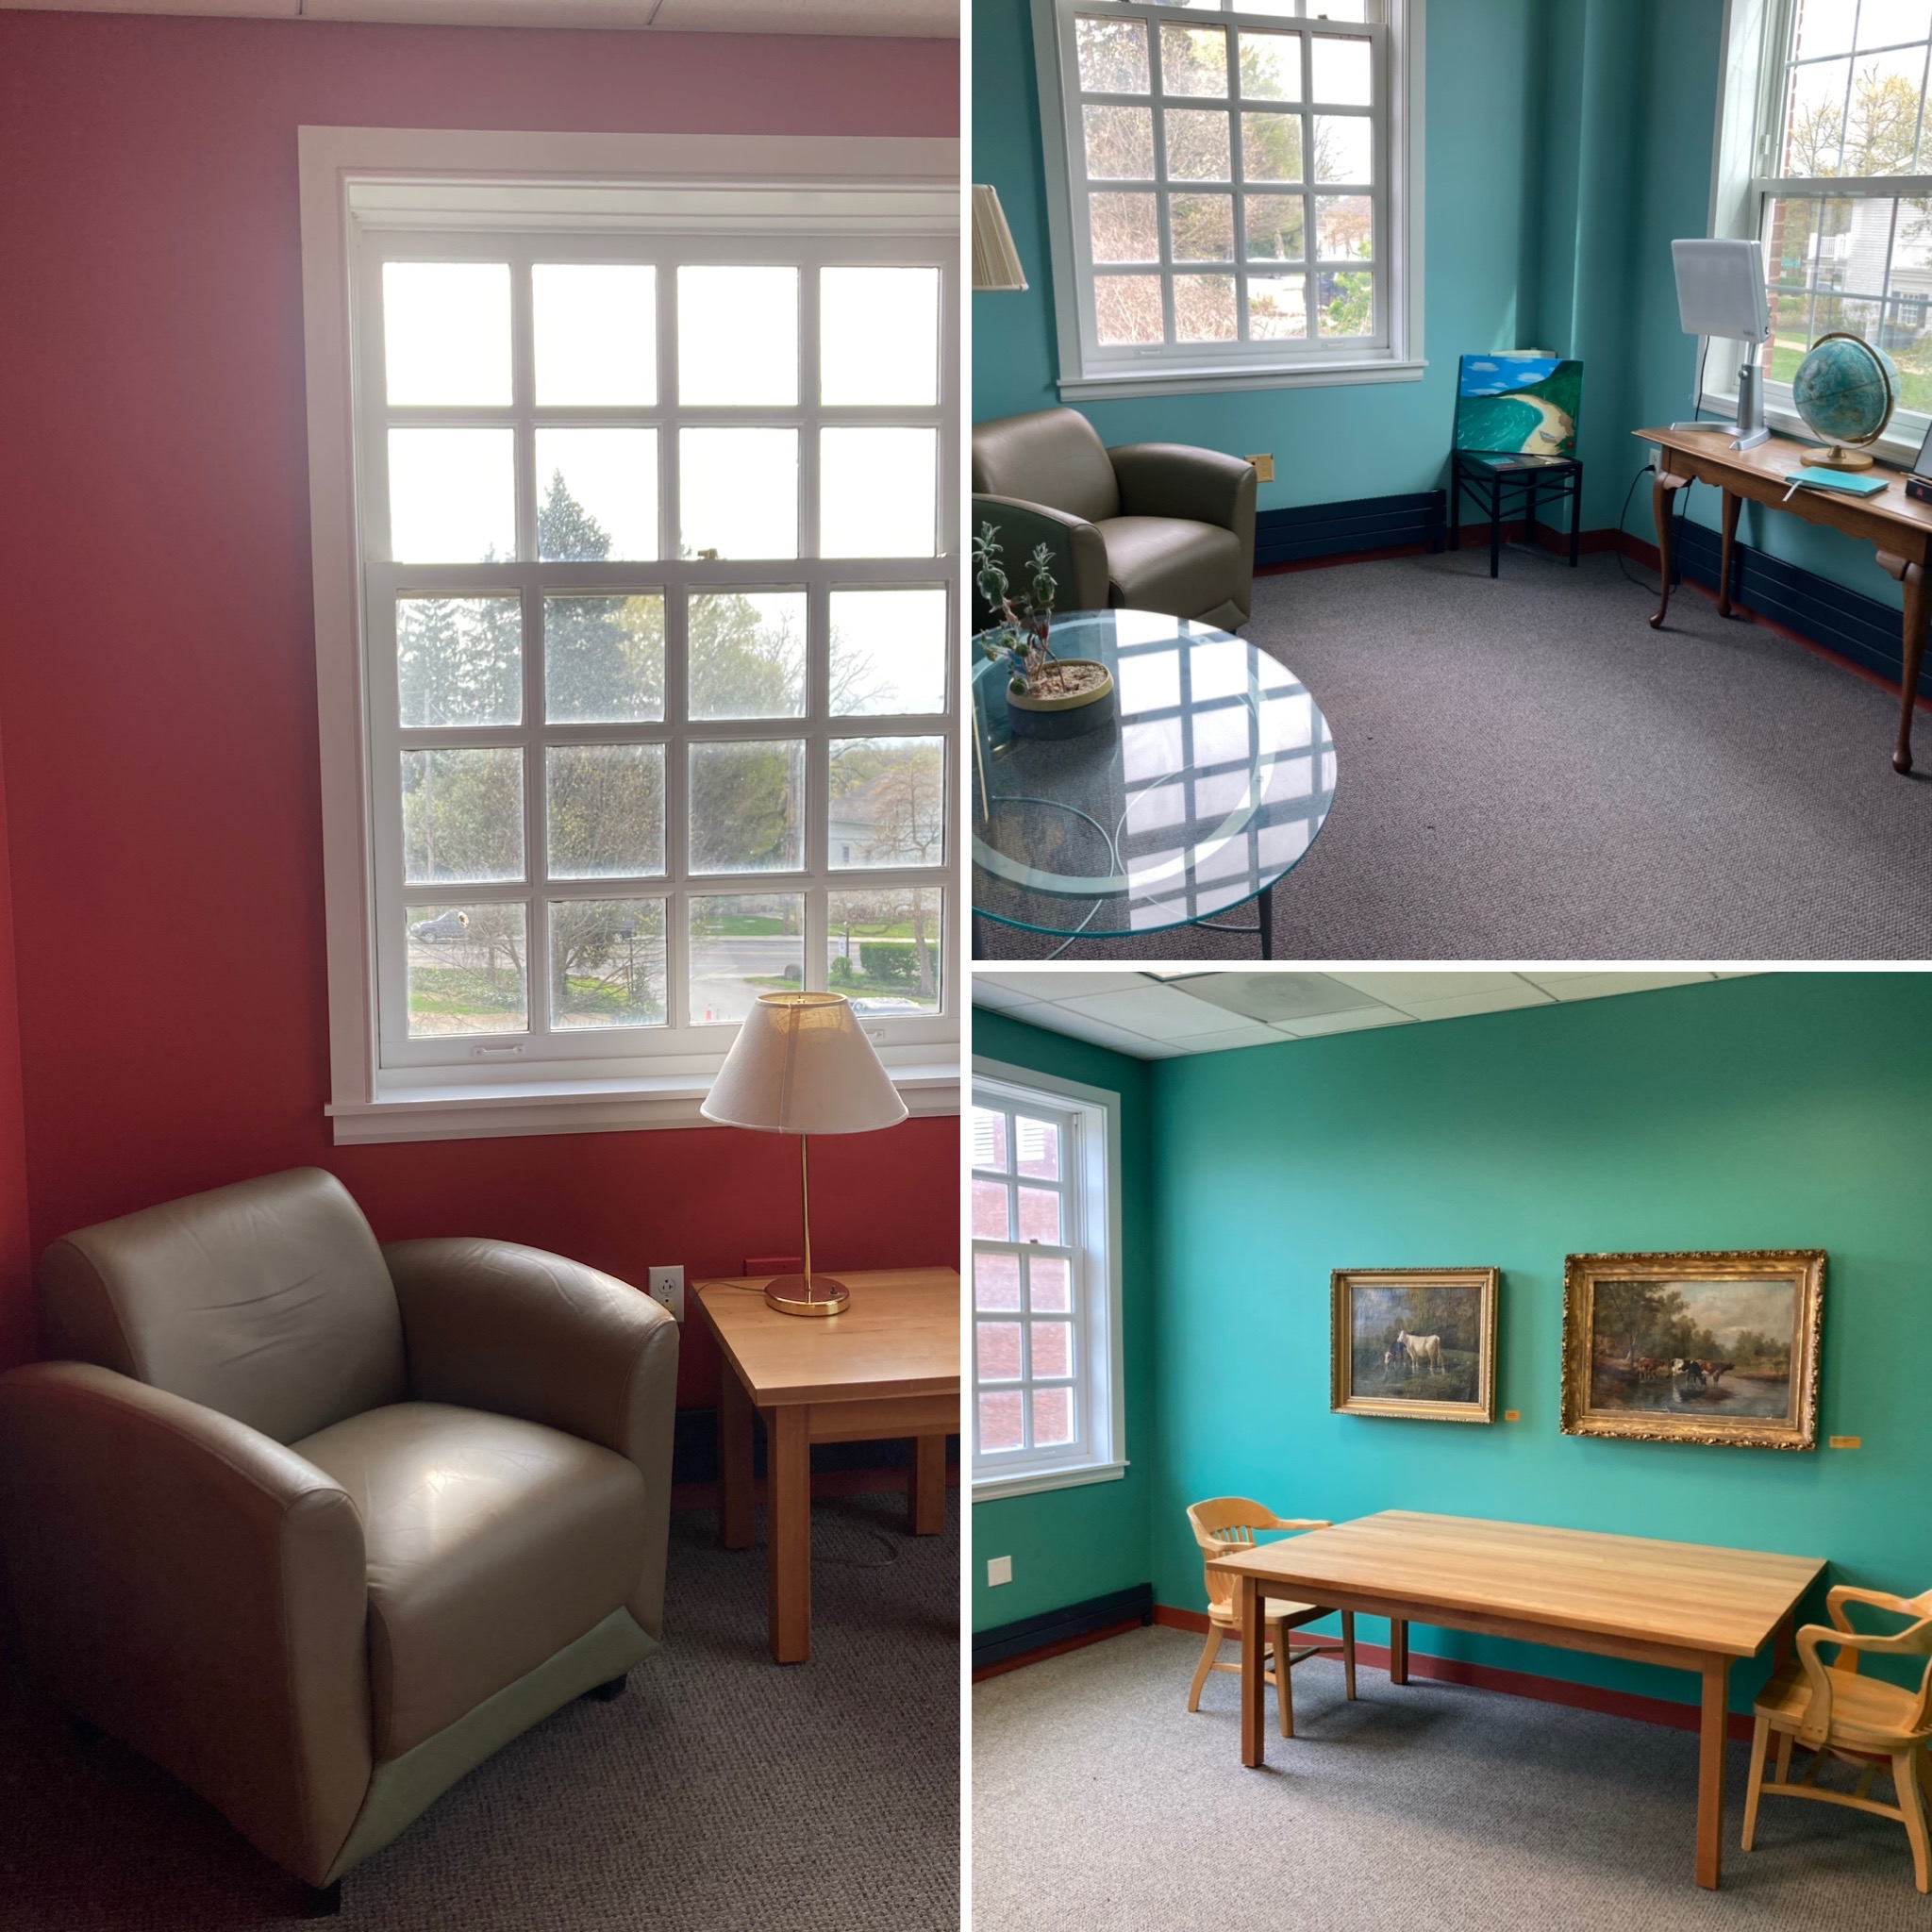 3 study areas with tables and chairs